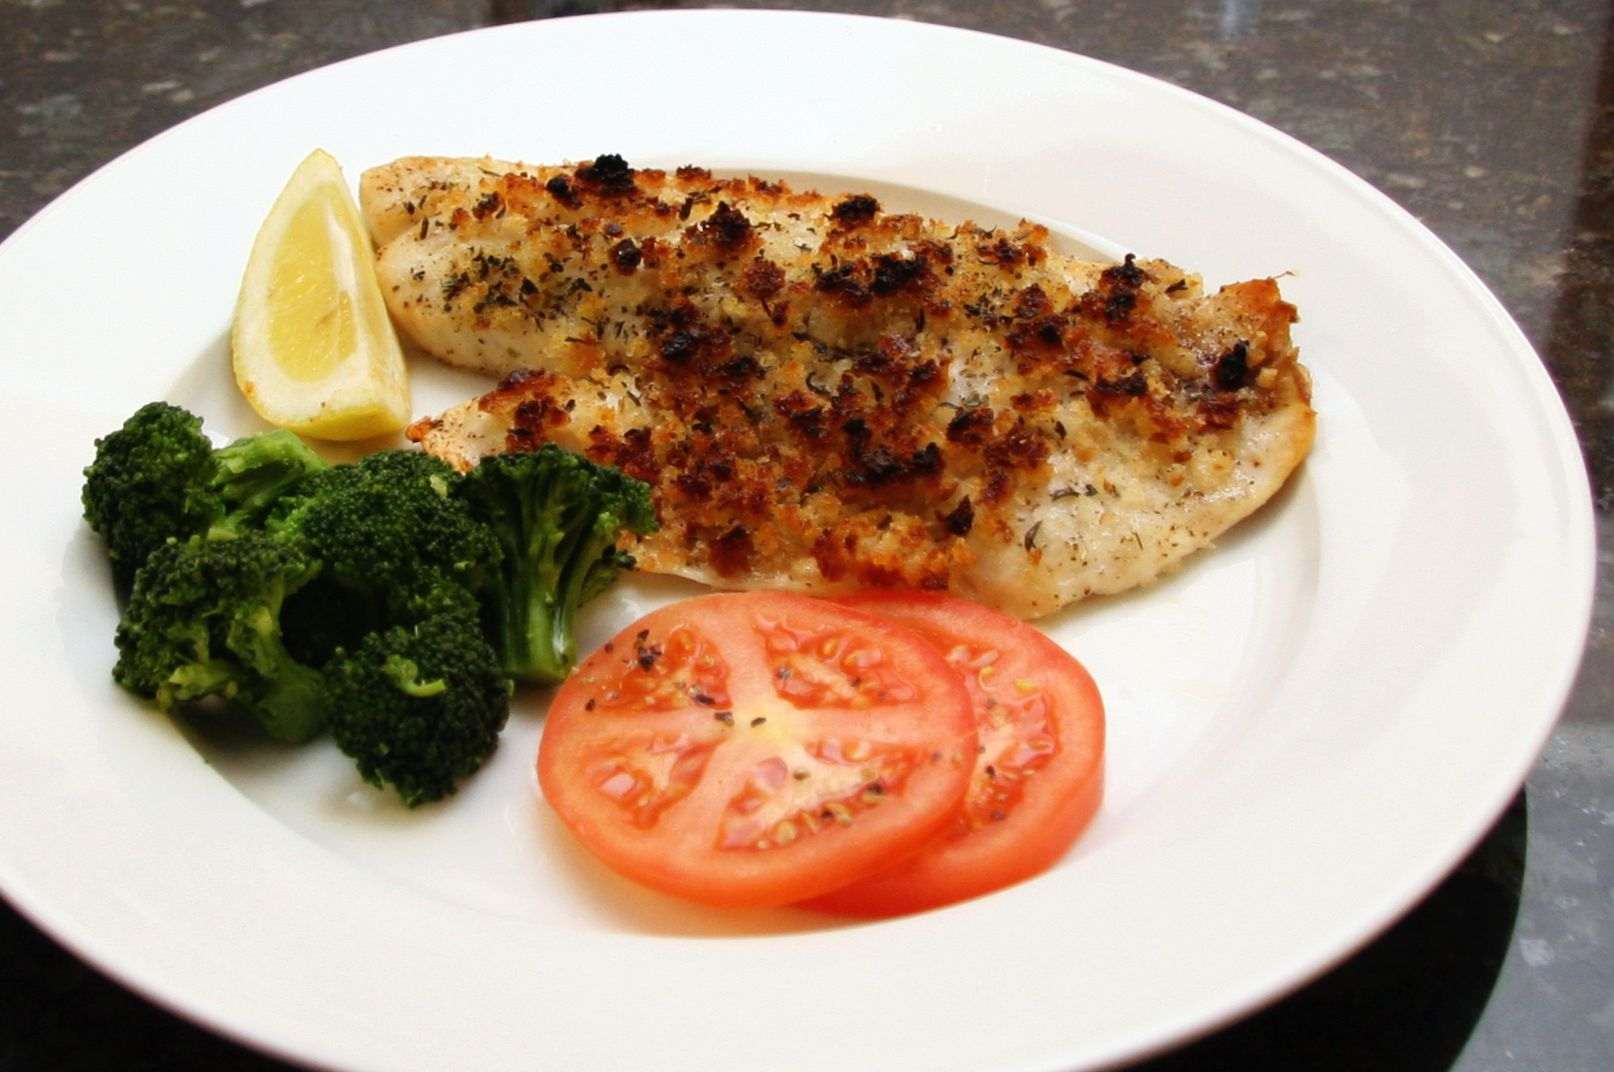 Baked fish fillets with seasoned crumb topping recipe for Baked fish seasoning